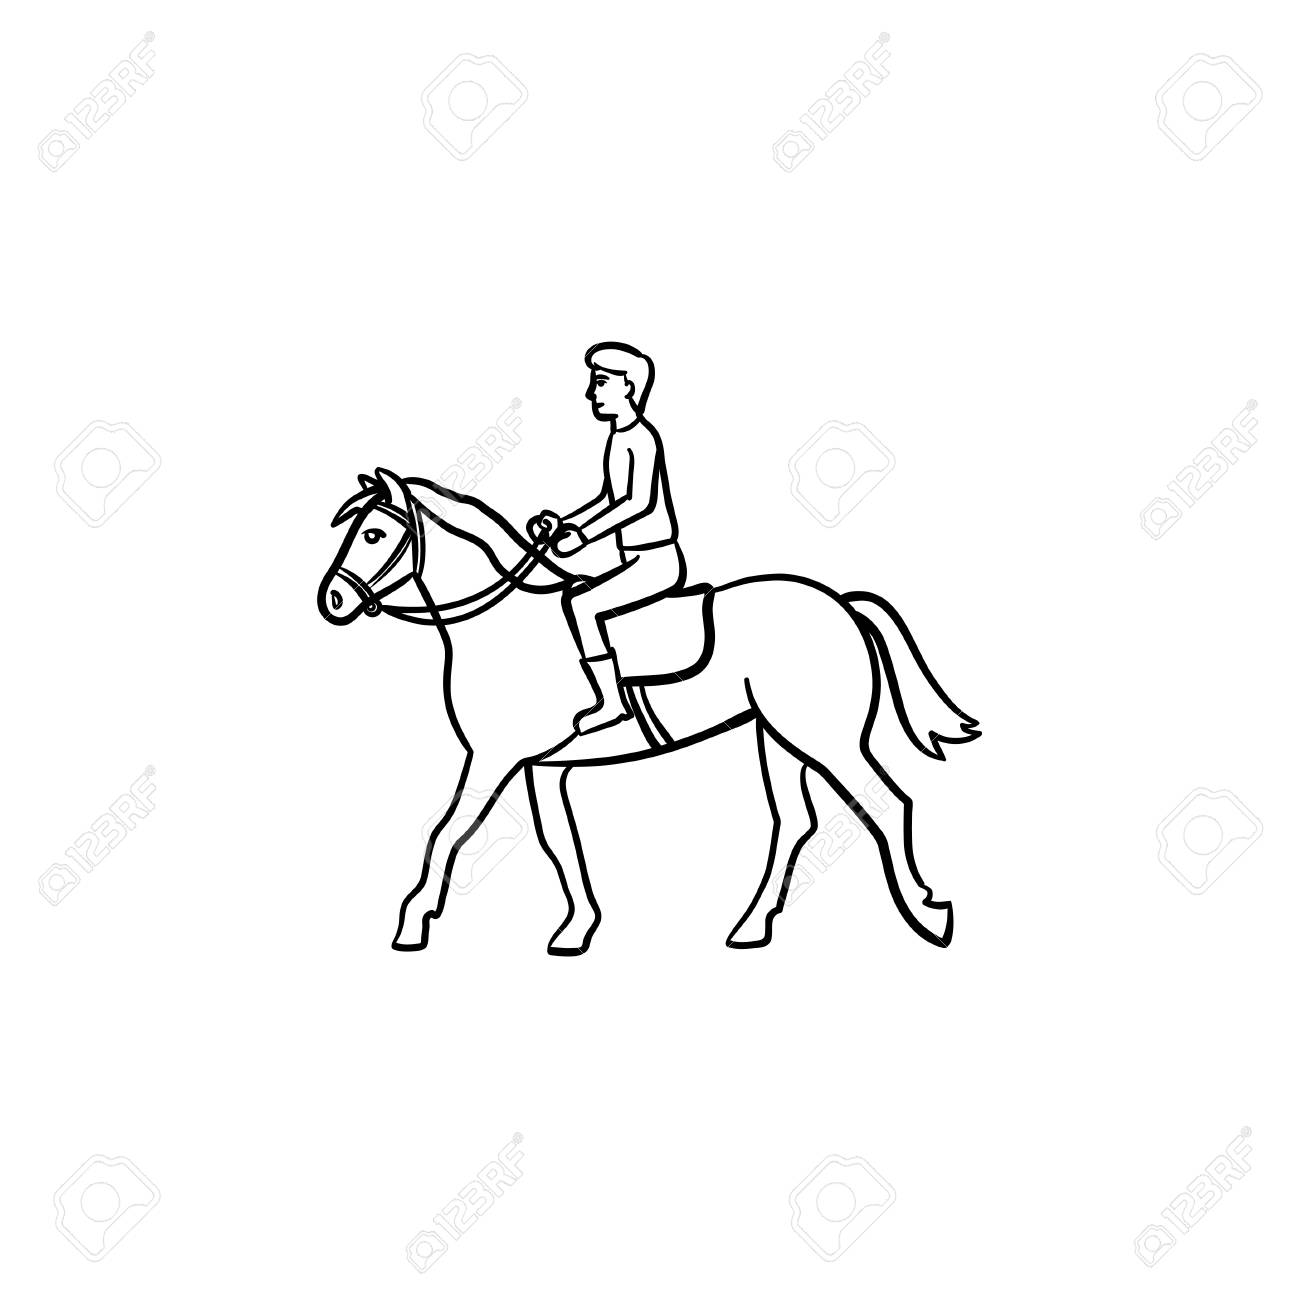 Man Riding Horse With Saddle Hand Drawn Outline Doodle Icon Royalty Free Cliparts Vectors And Stock Illustration Image 100016054